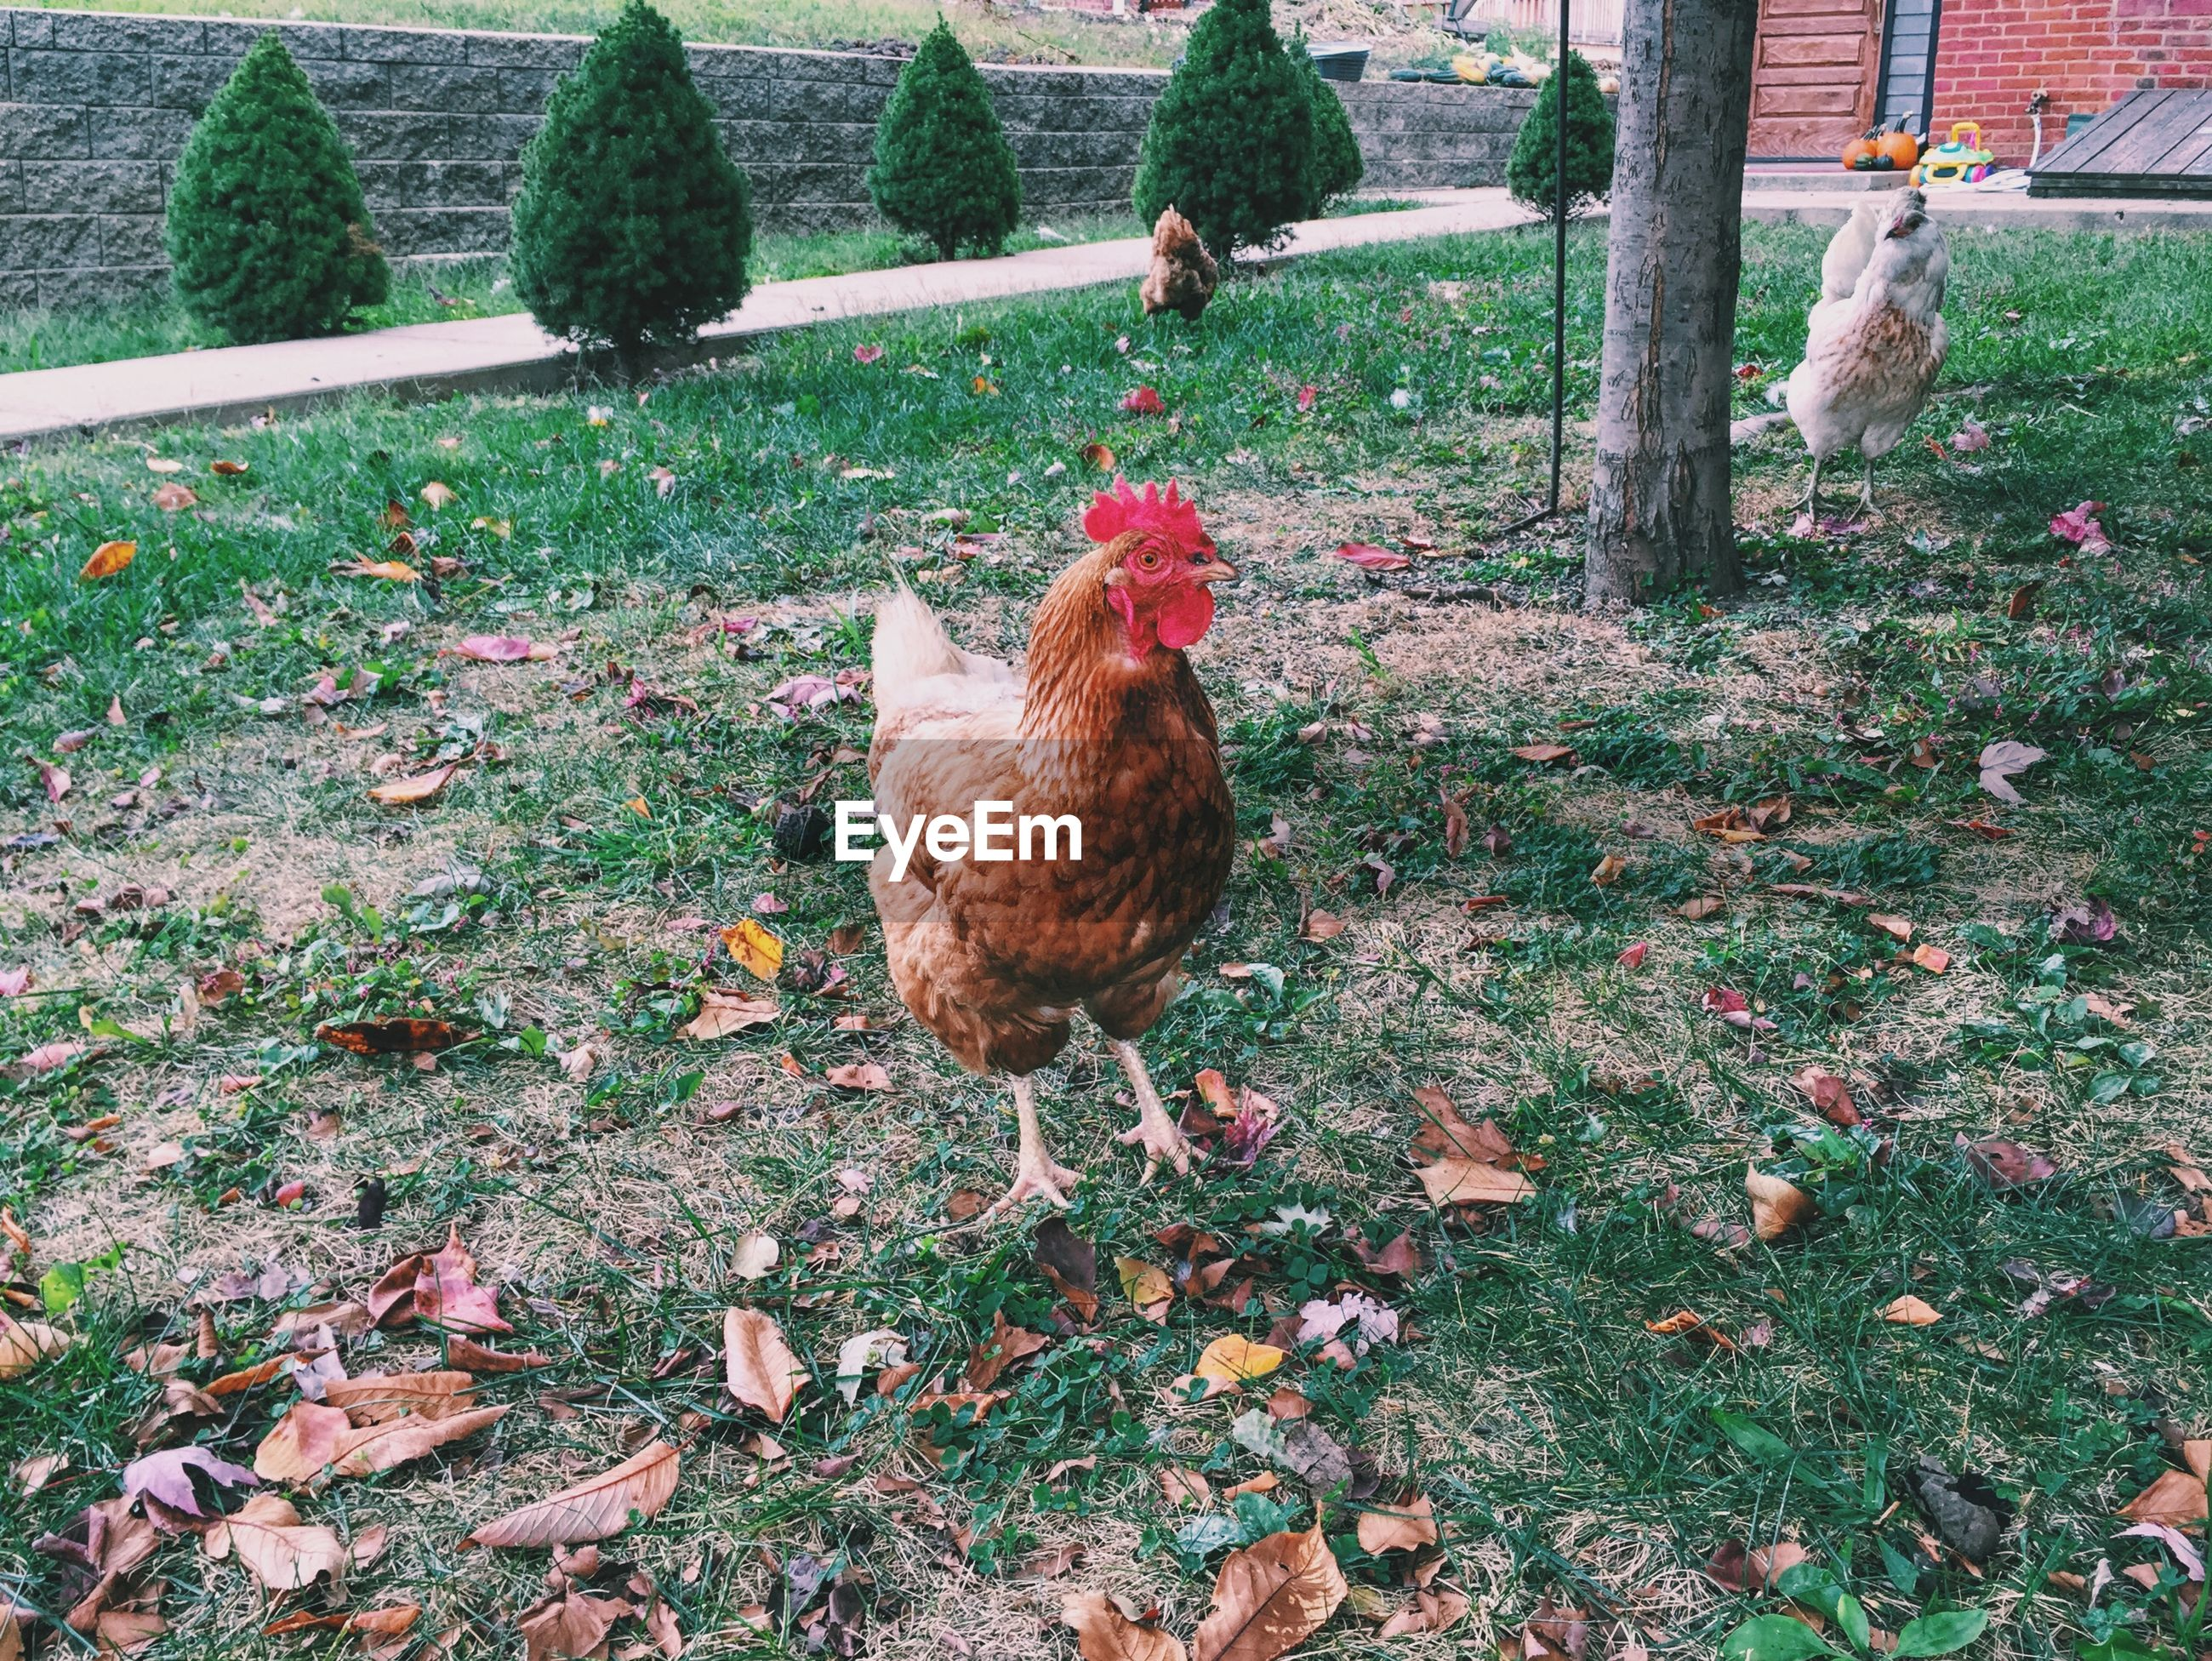 Chickens on field